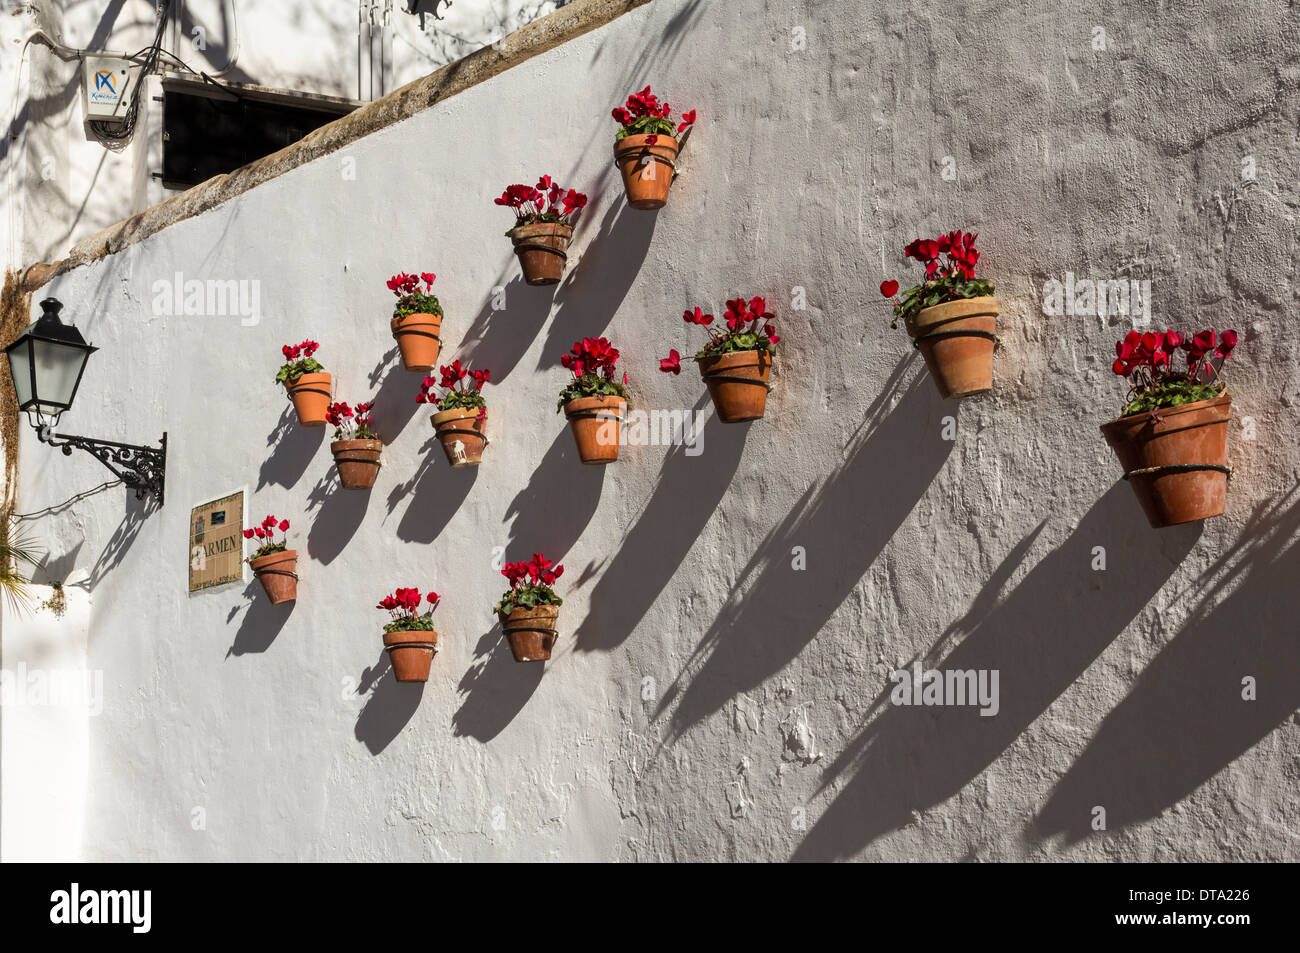 MARBELLA SPAIN THE OLD TOWN AND FLOWER POTS ON A WALL WITH CYCLAMEN FLOWERS AT CHRISTMAS TIME - Stock Image